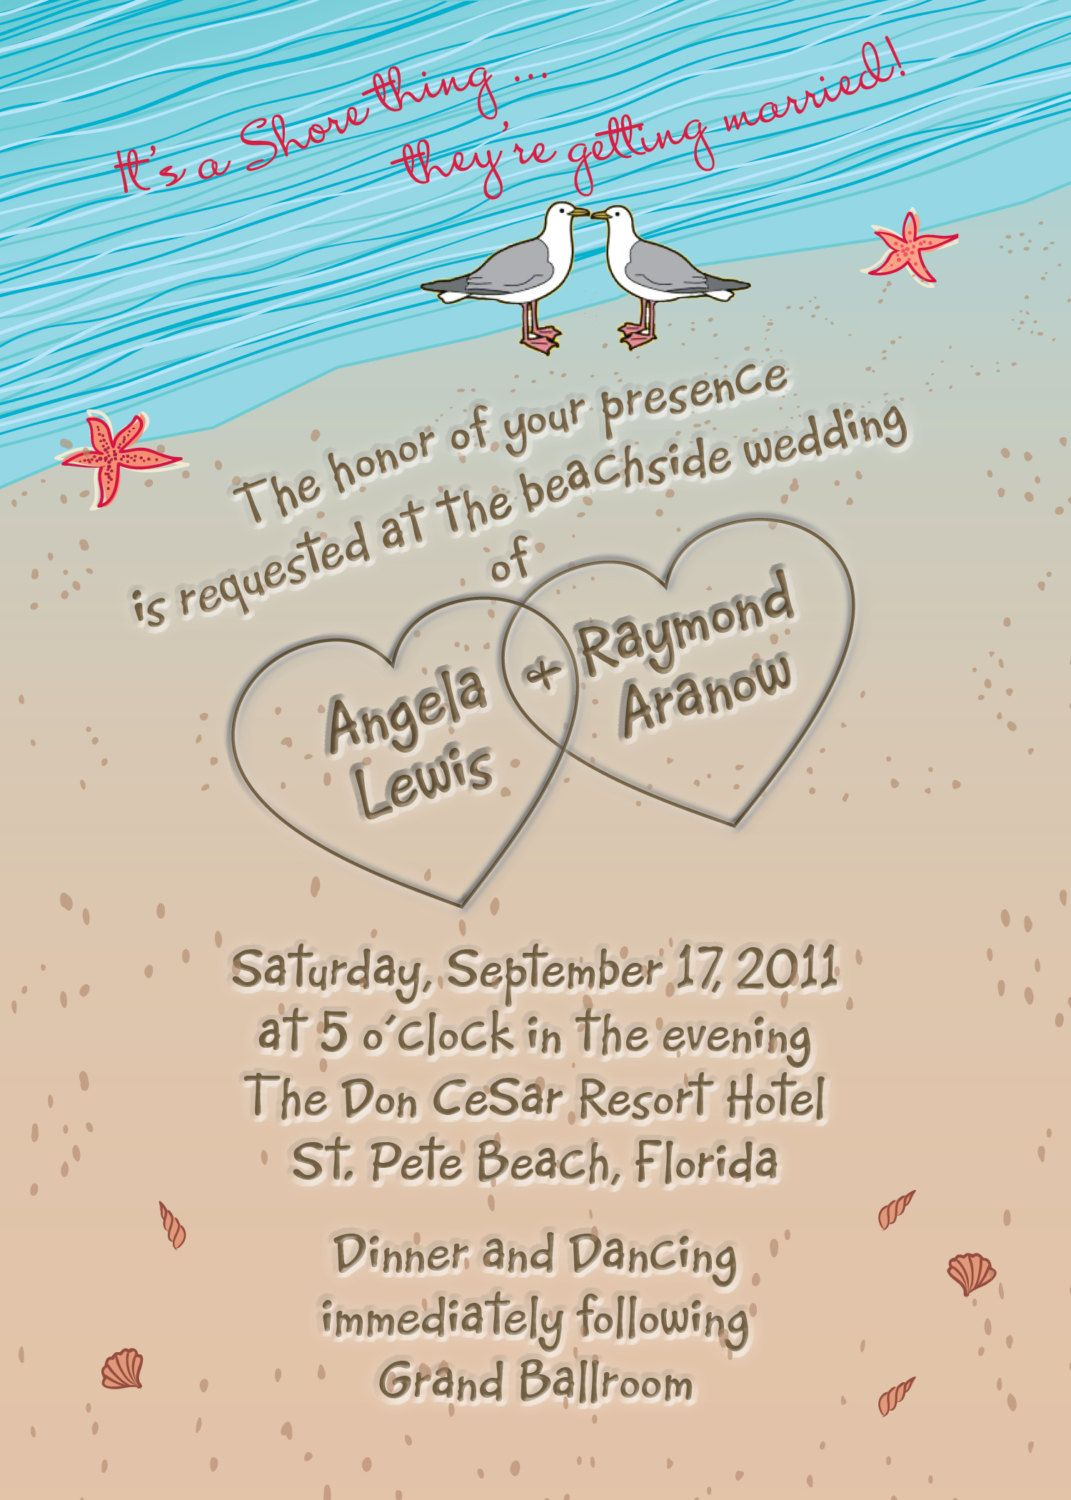 casual evening wedding invitation wording%0A beach wedding invitations   Beach wedding invitation with Hearts in sand  Seagulls and Seashells